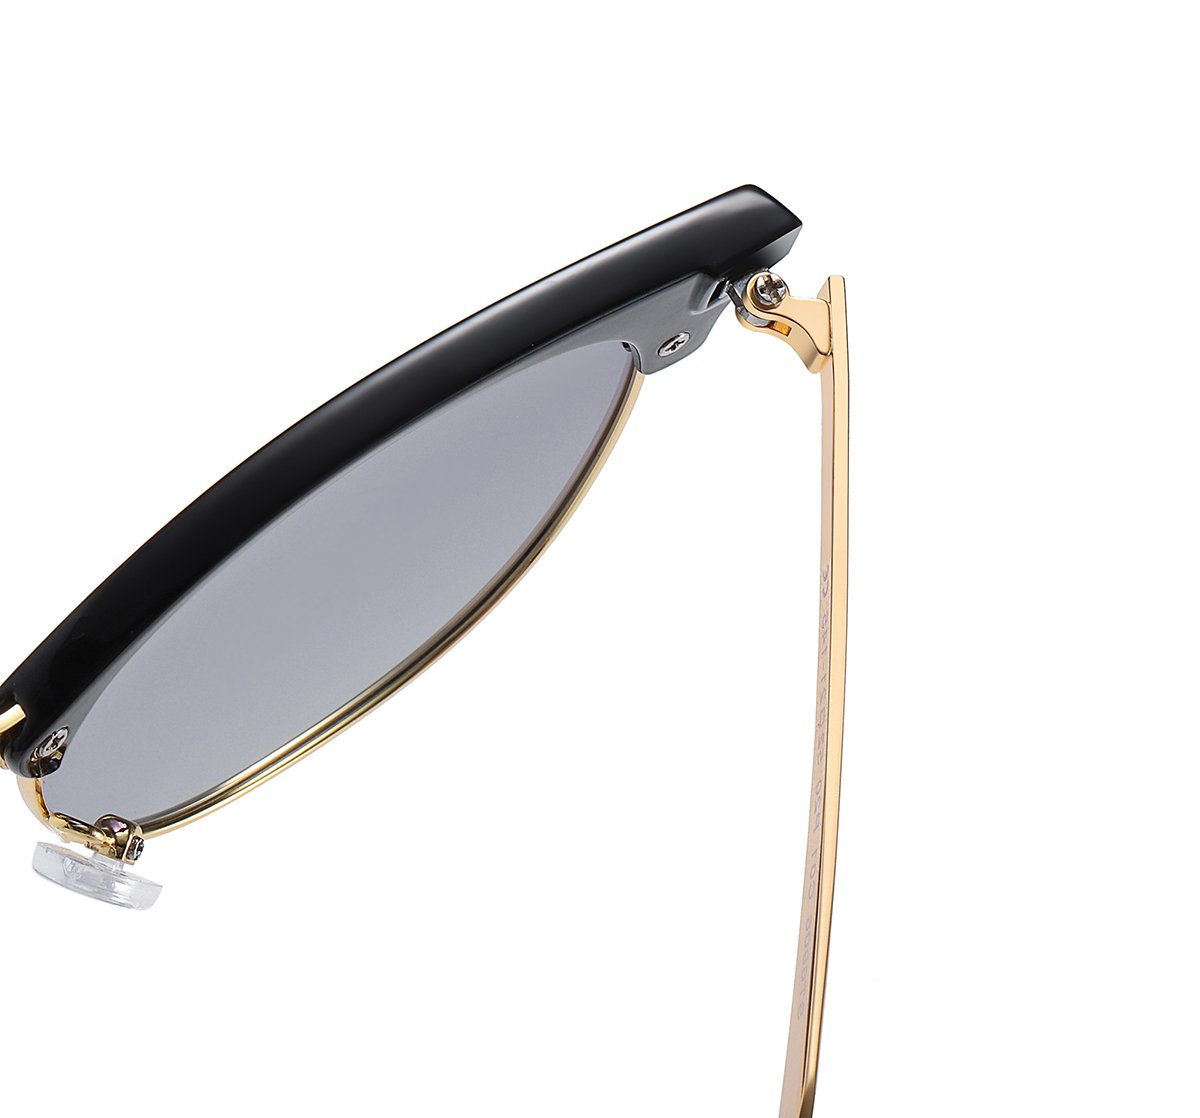 black sunglasses frames with gold temple arms, strong build hinges